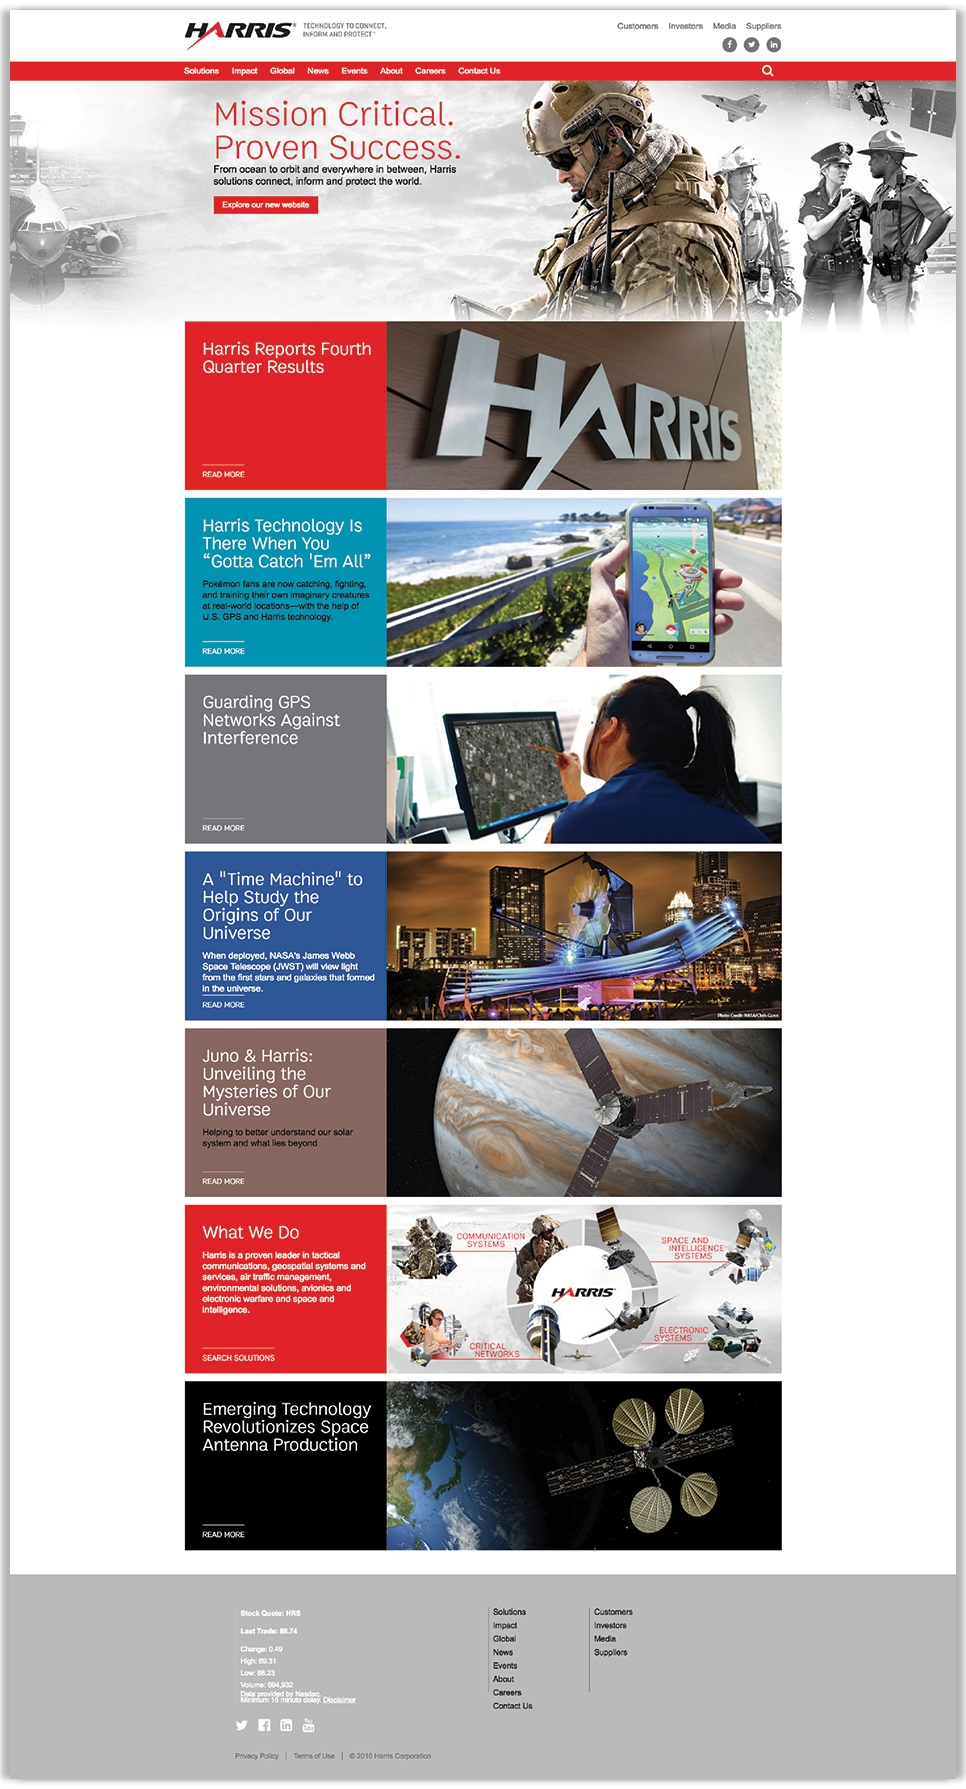 Harris Company's full homepage design, a global communications systems provider